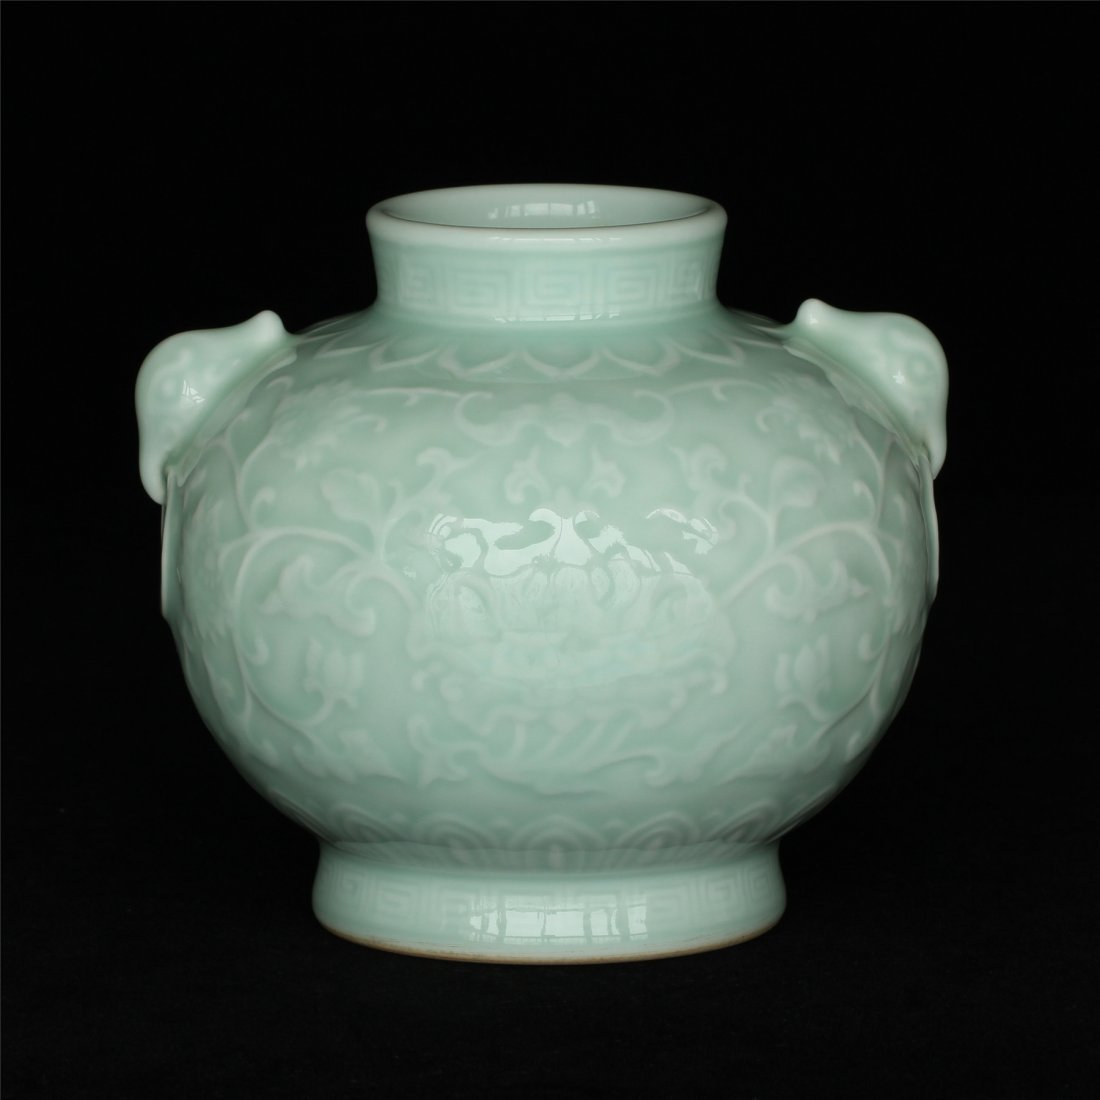 Blue glaze carving porcelain jar of Qing Dynasty - 9